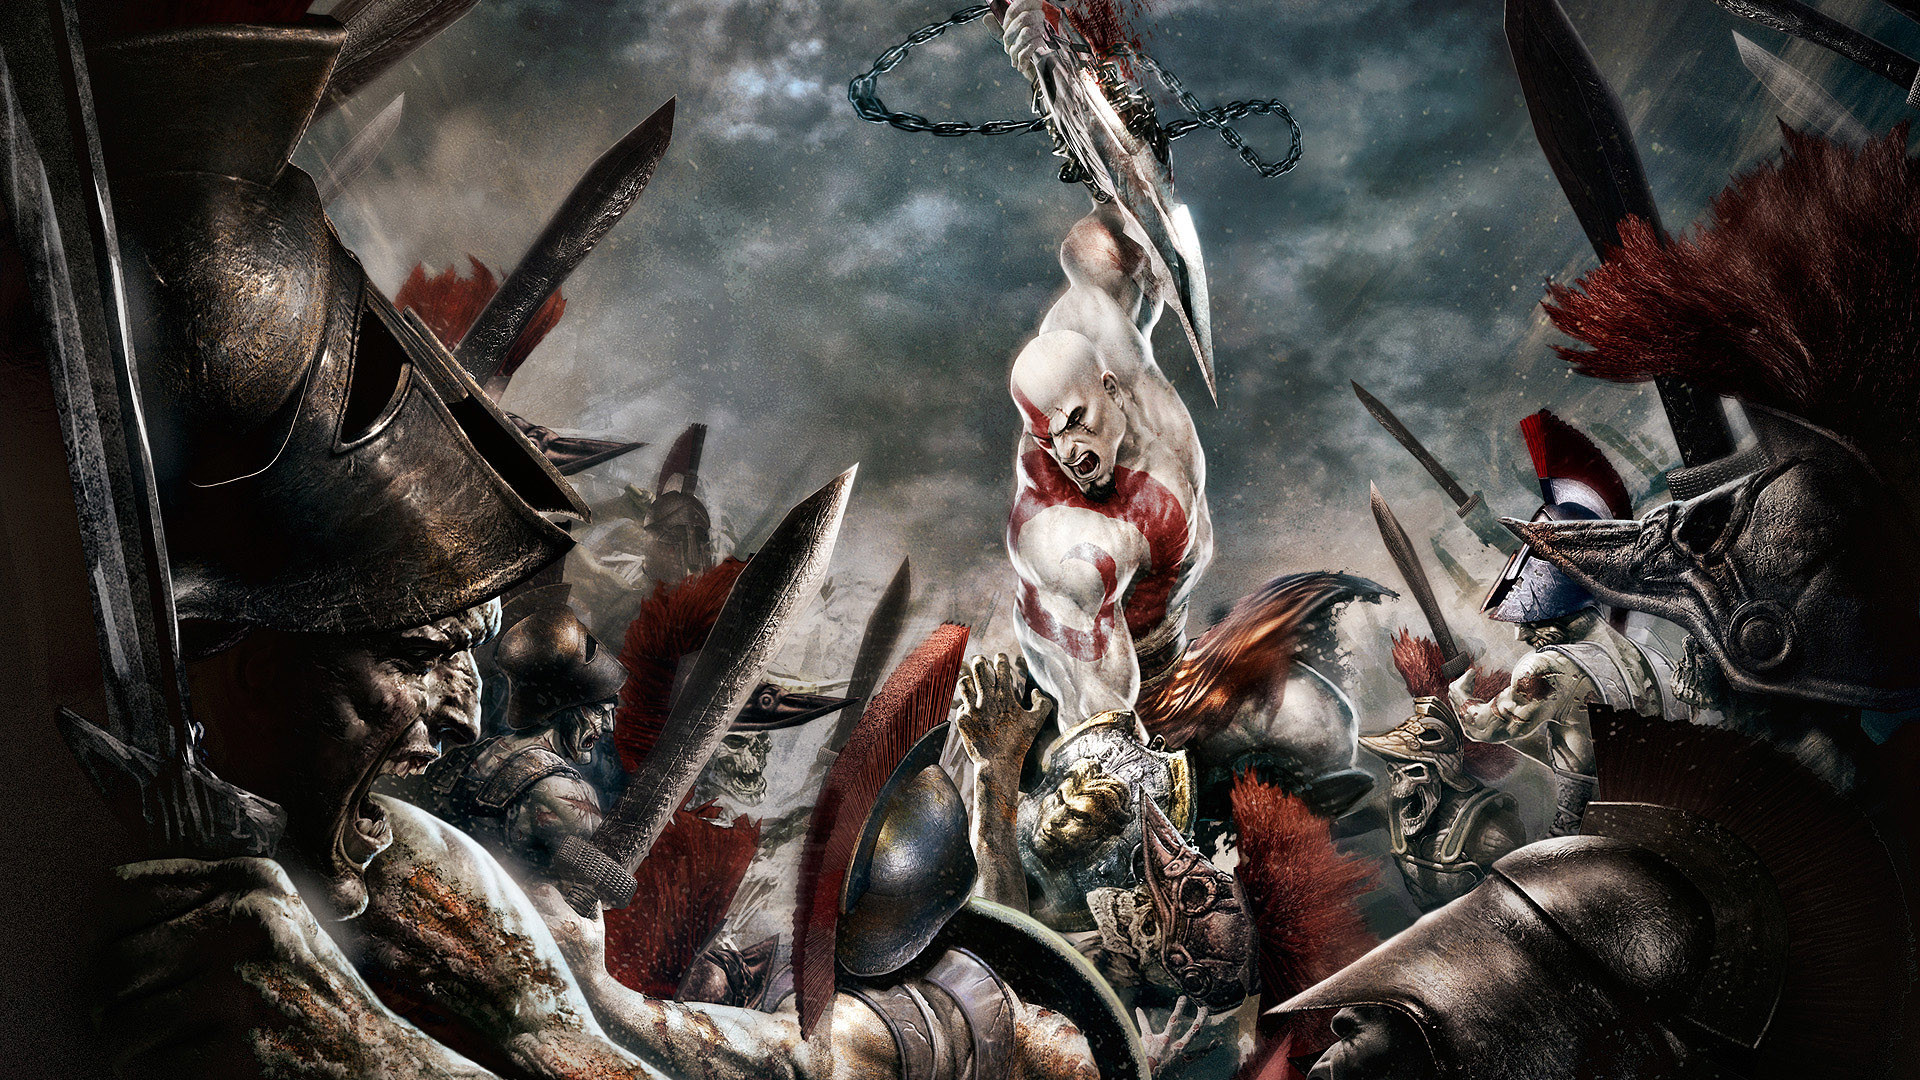 God of War Wallpaper (82+ images)